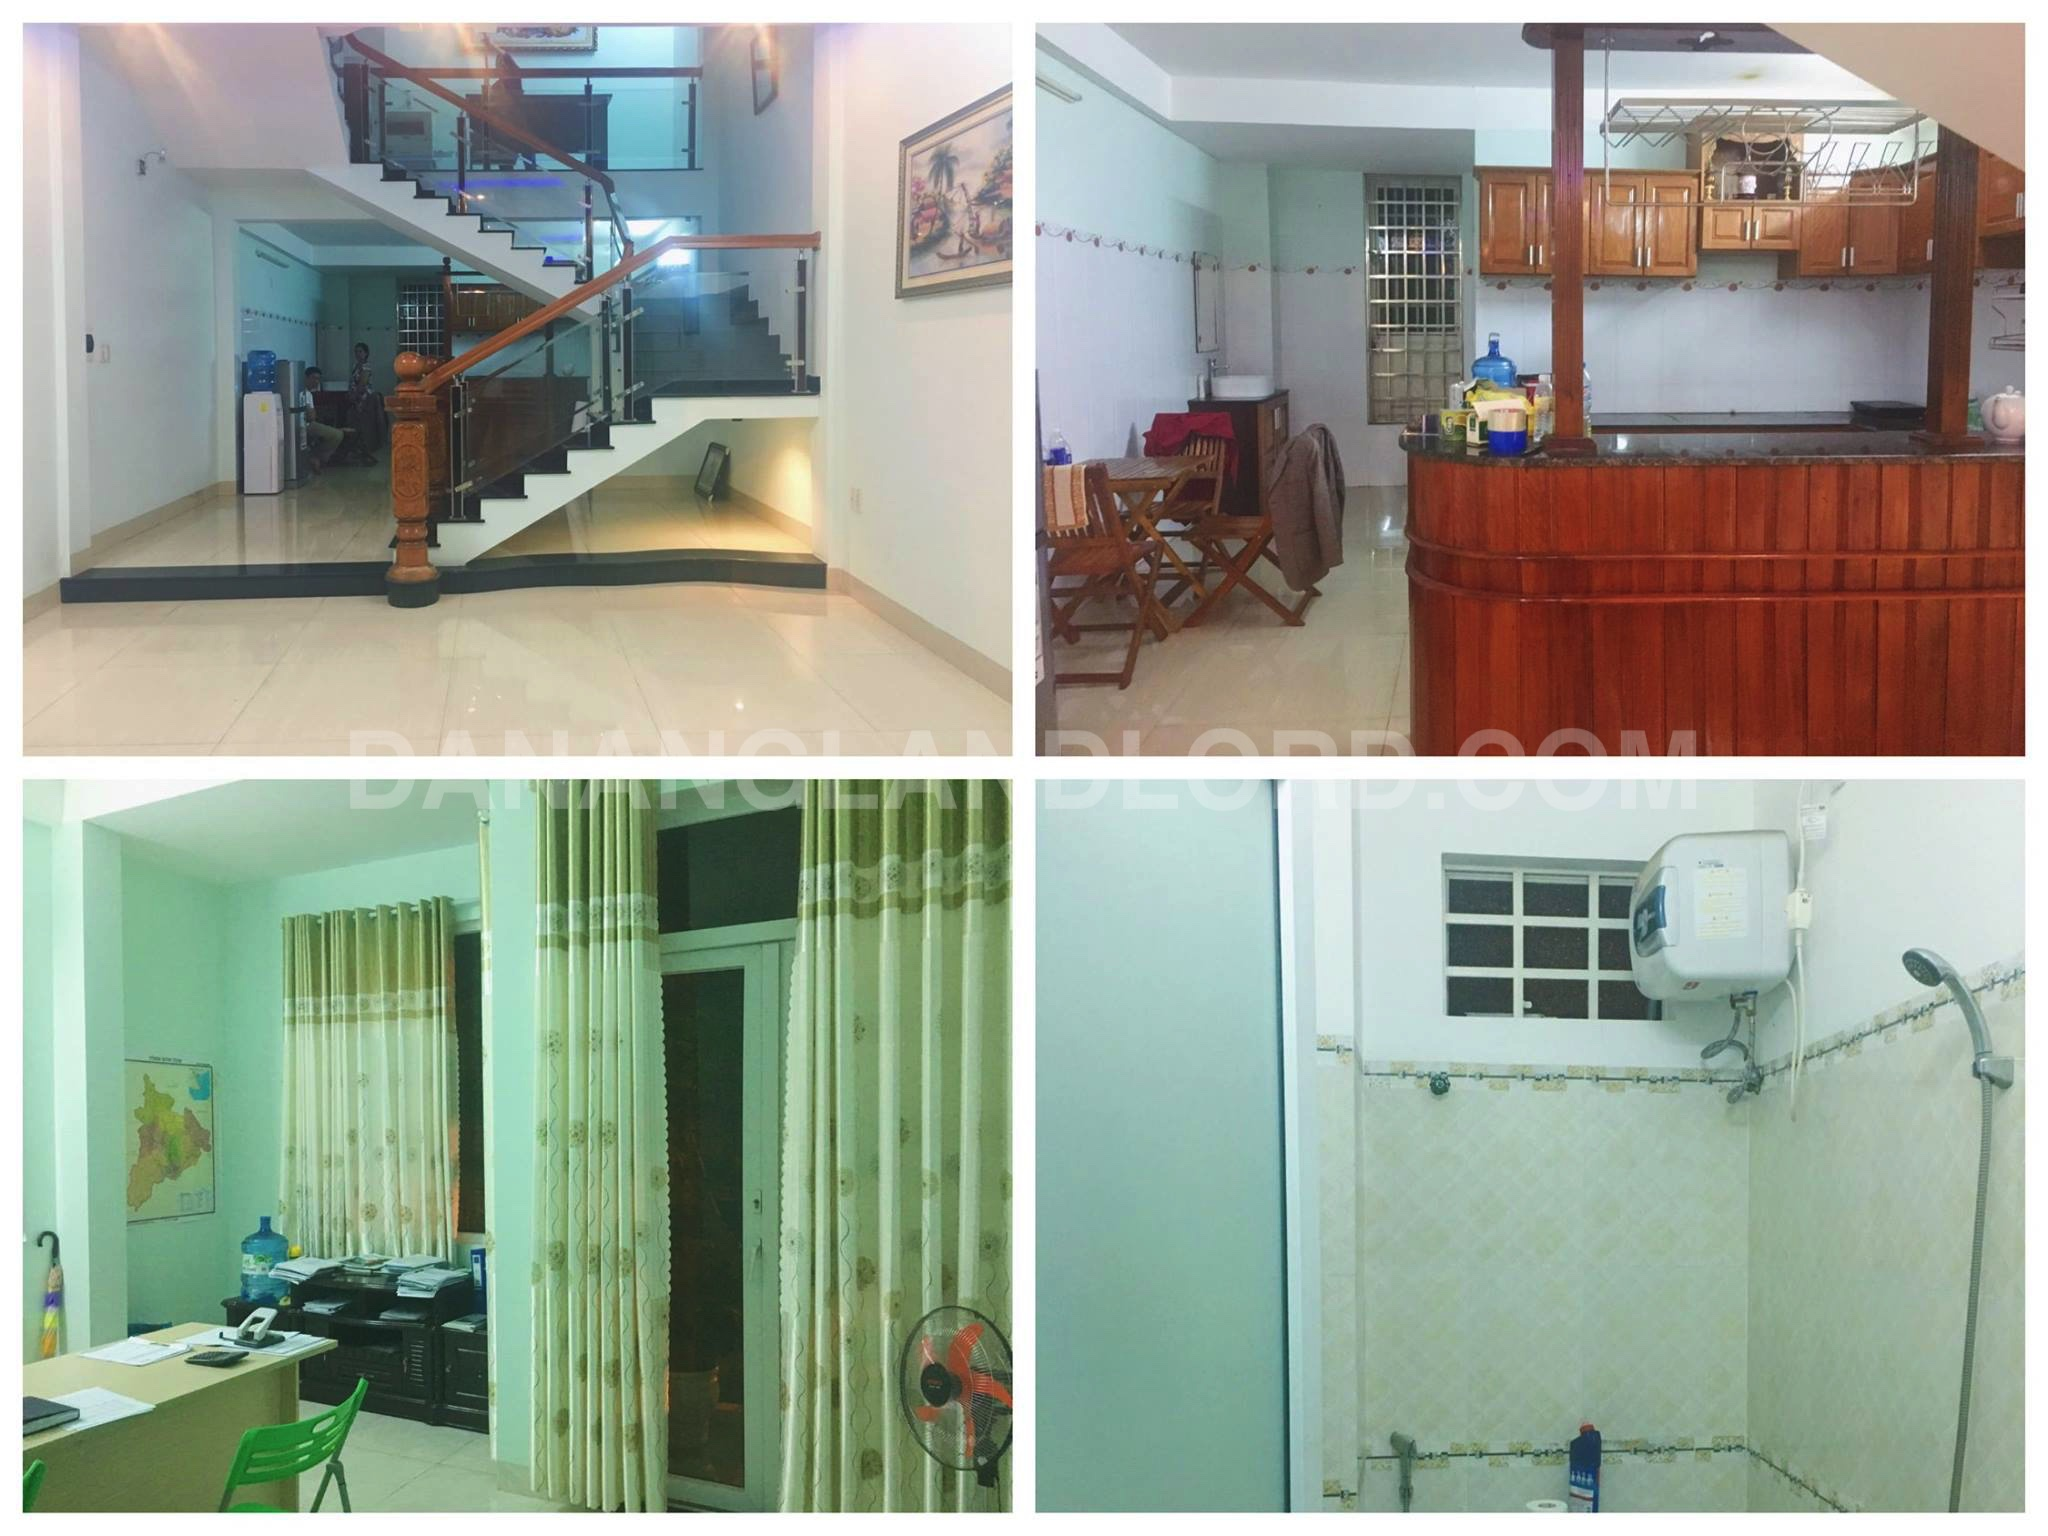 the three flour house with 4 bedrooms in my an area da nang the three flour house with 4 bedrooms in my an area